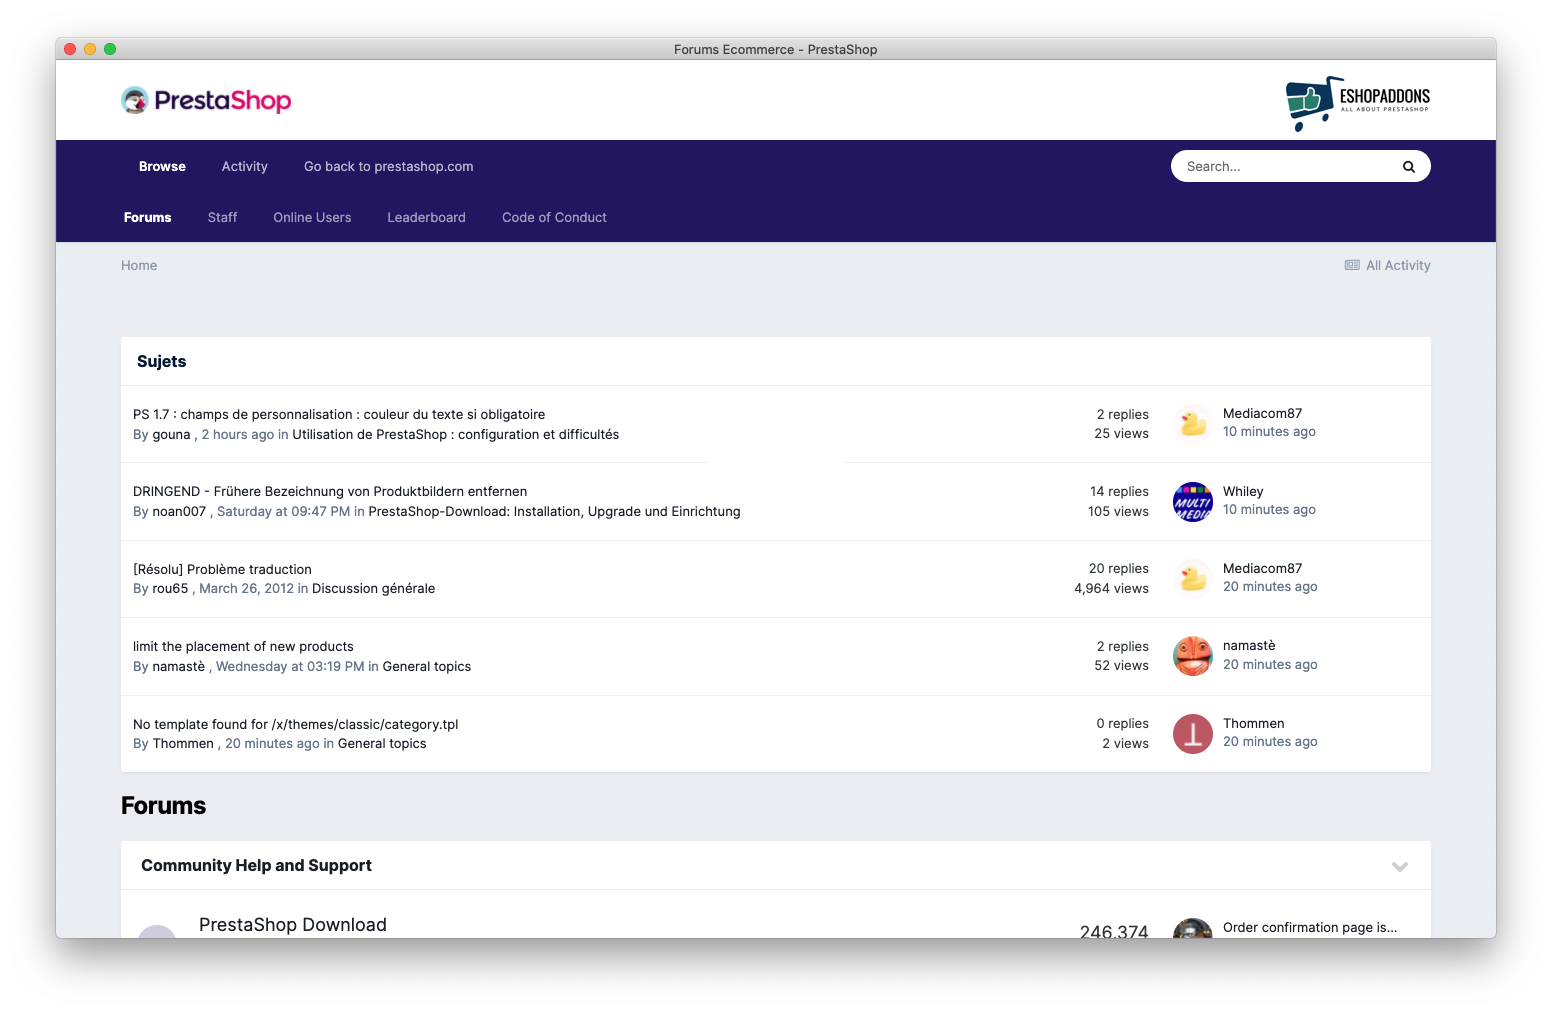 PrestaShop Forum - not all topics and messages are in English